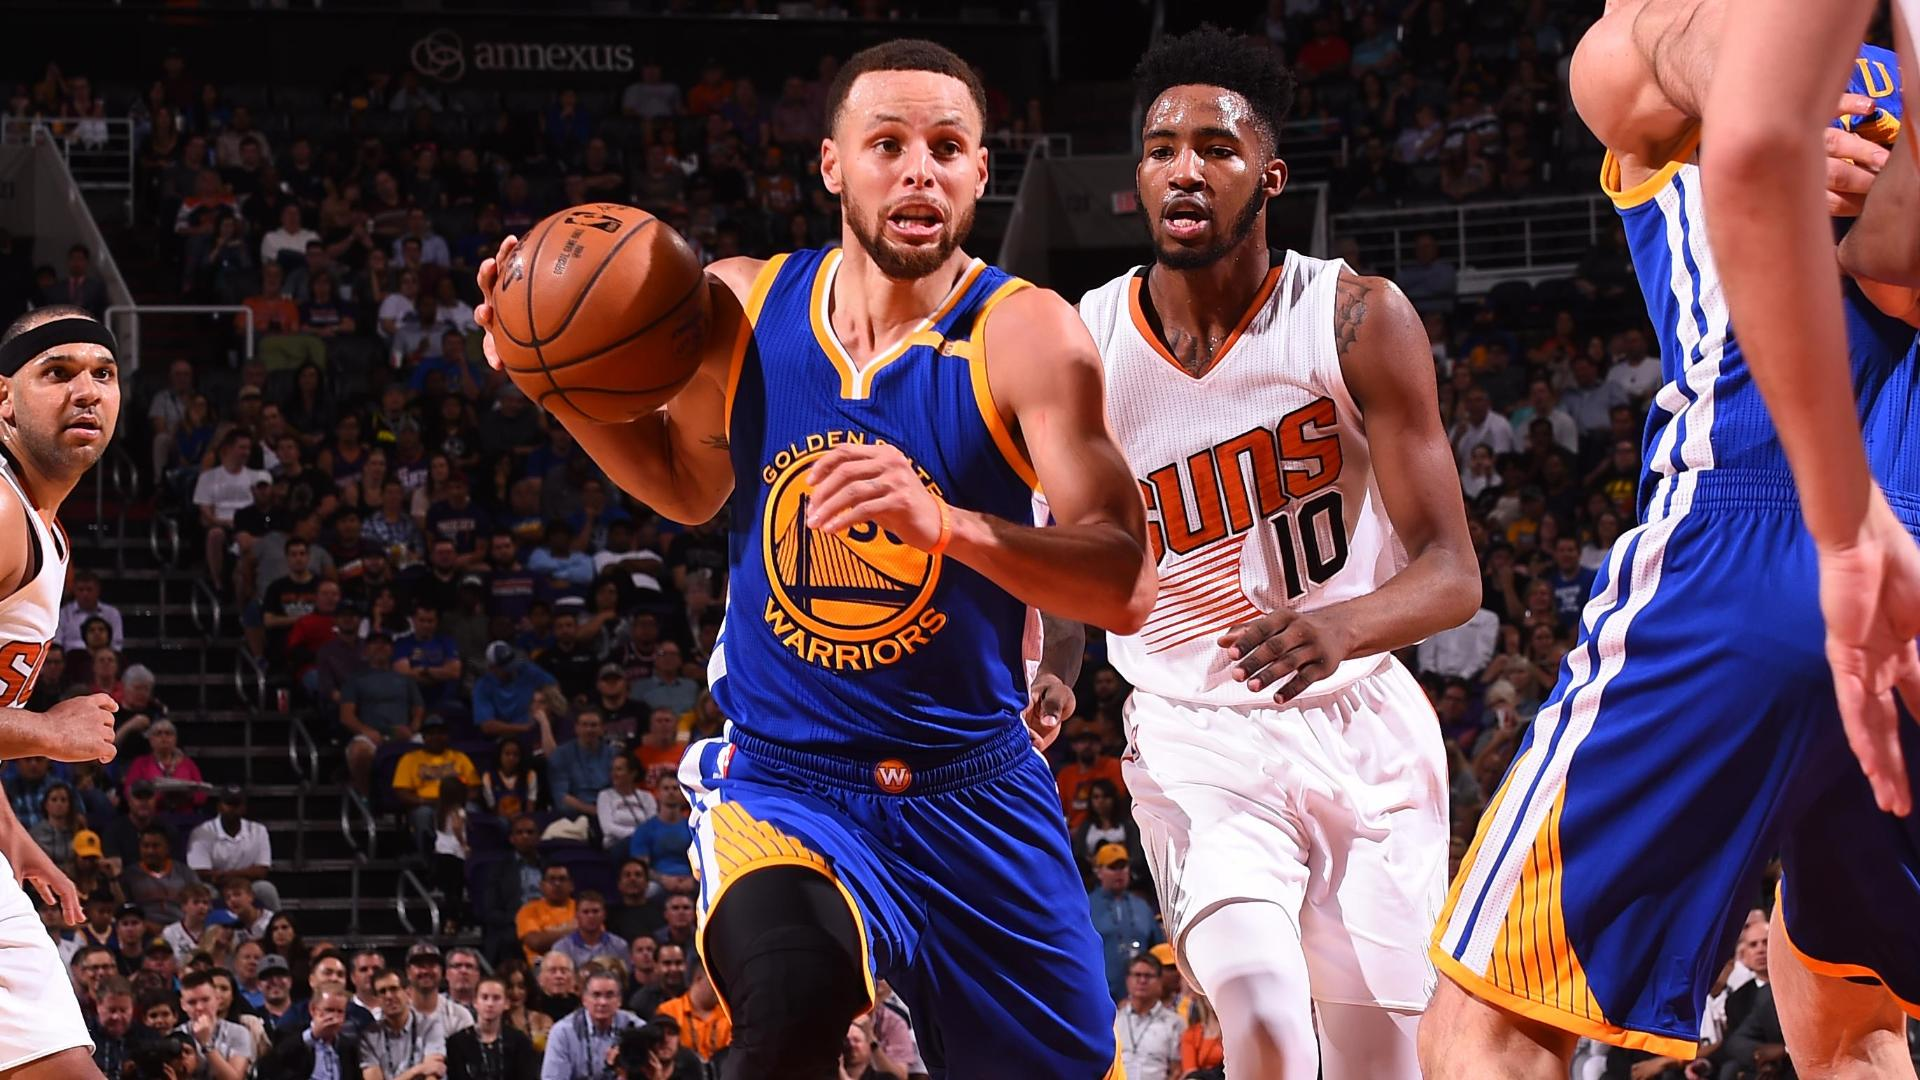 Curry puts on a show as Warriors beat Suns